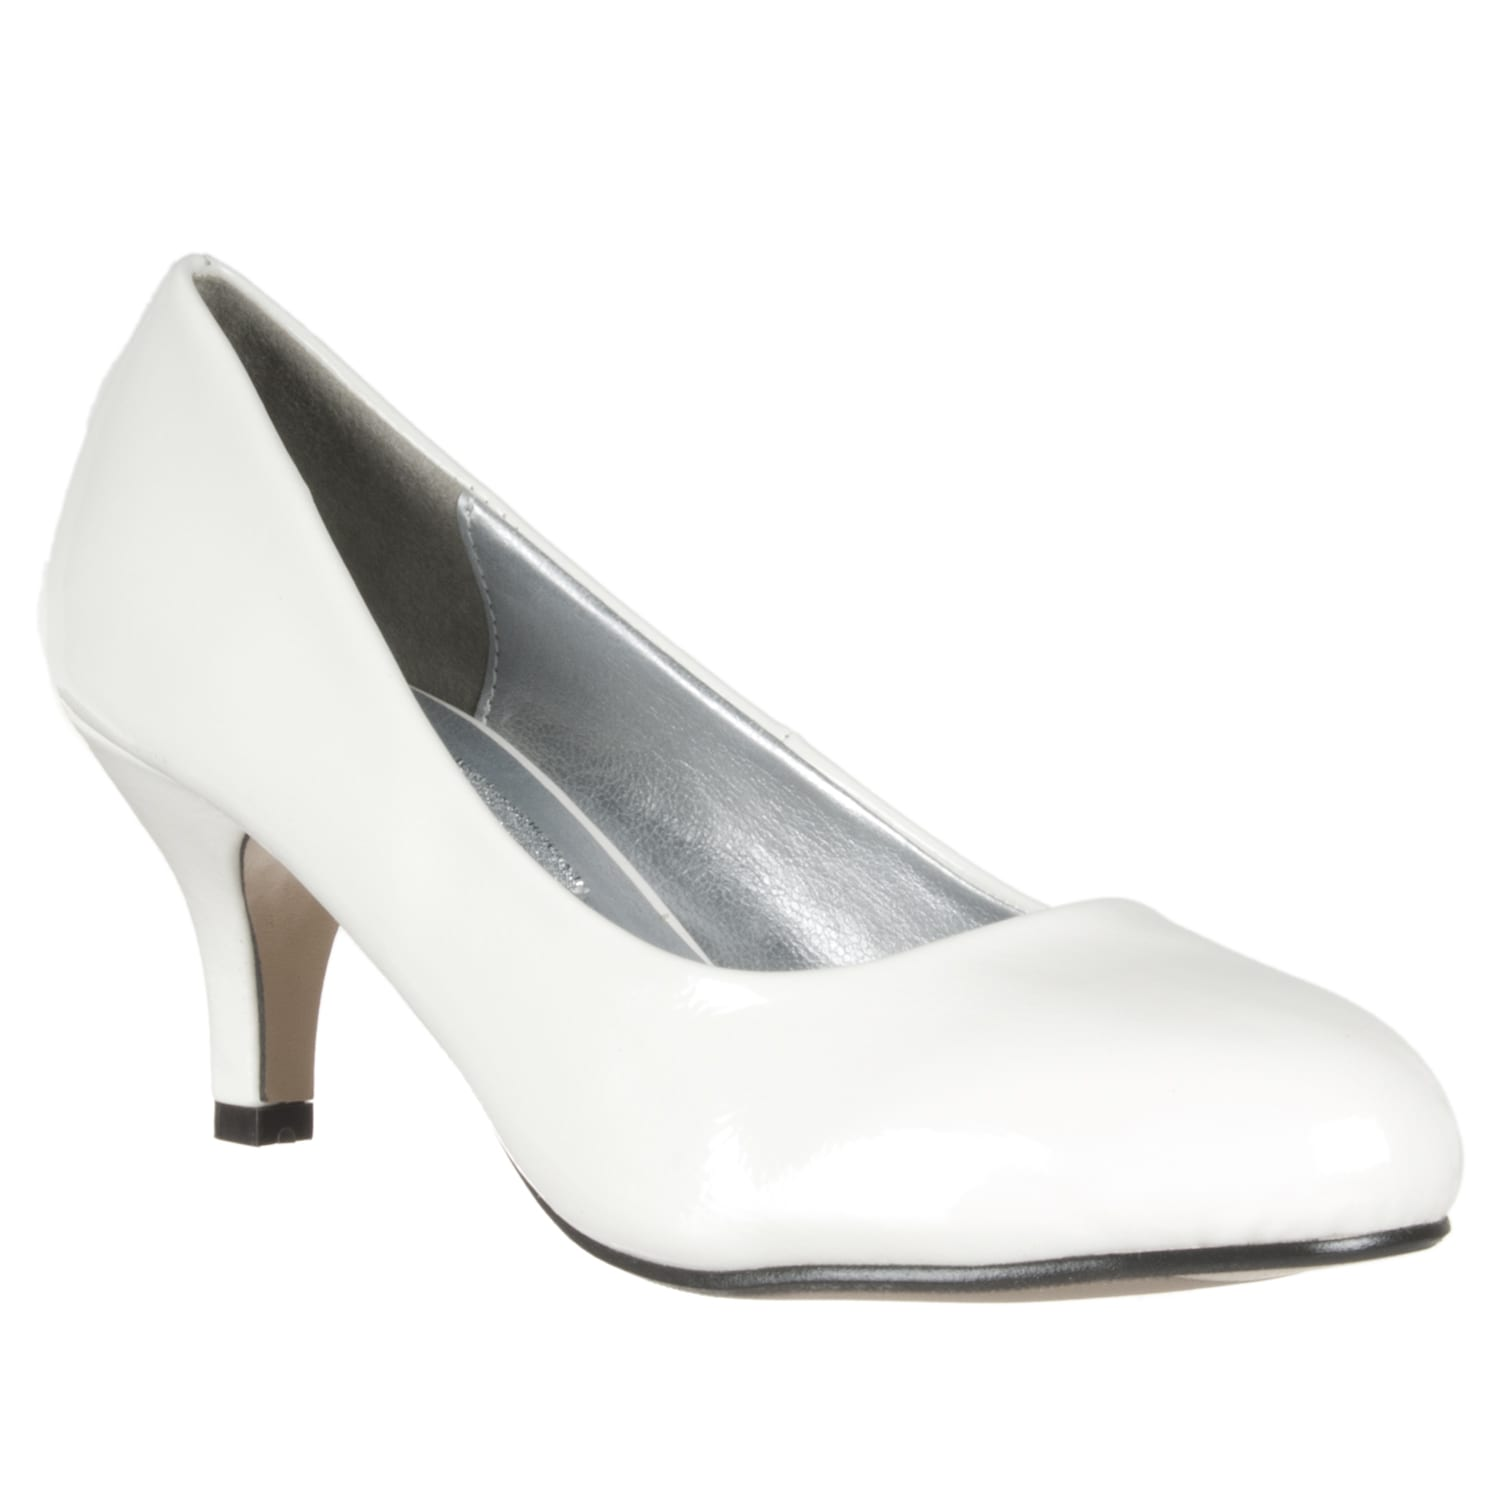 Riverberry Women&39s White Patent Mid-Heel Pumps - Free Shipping On